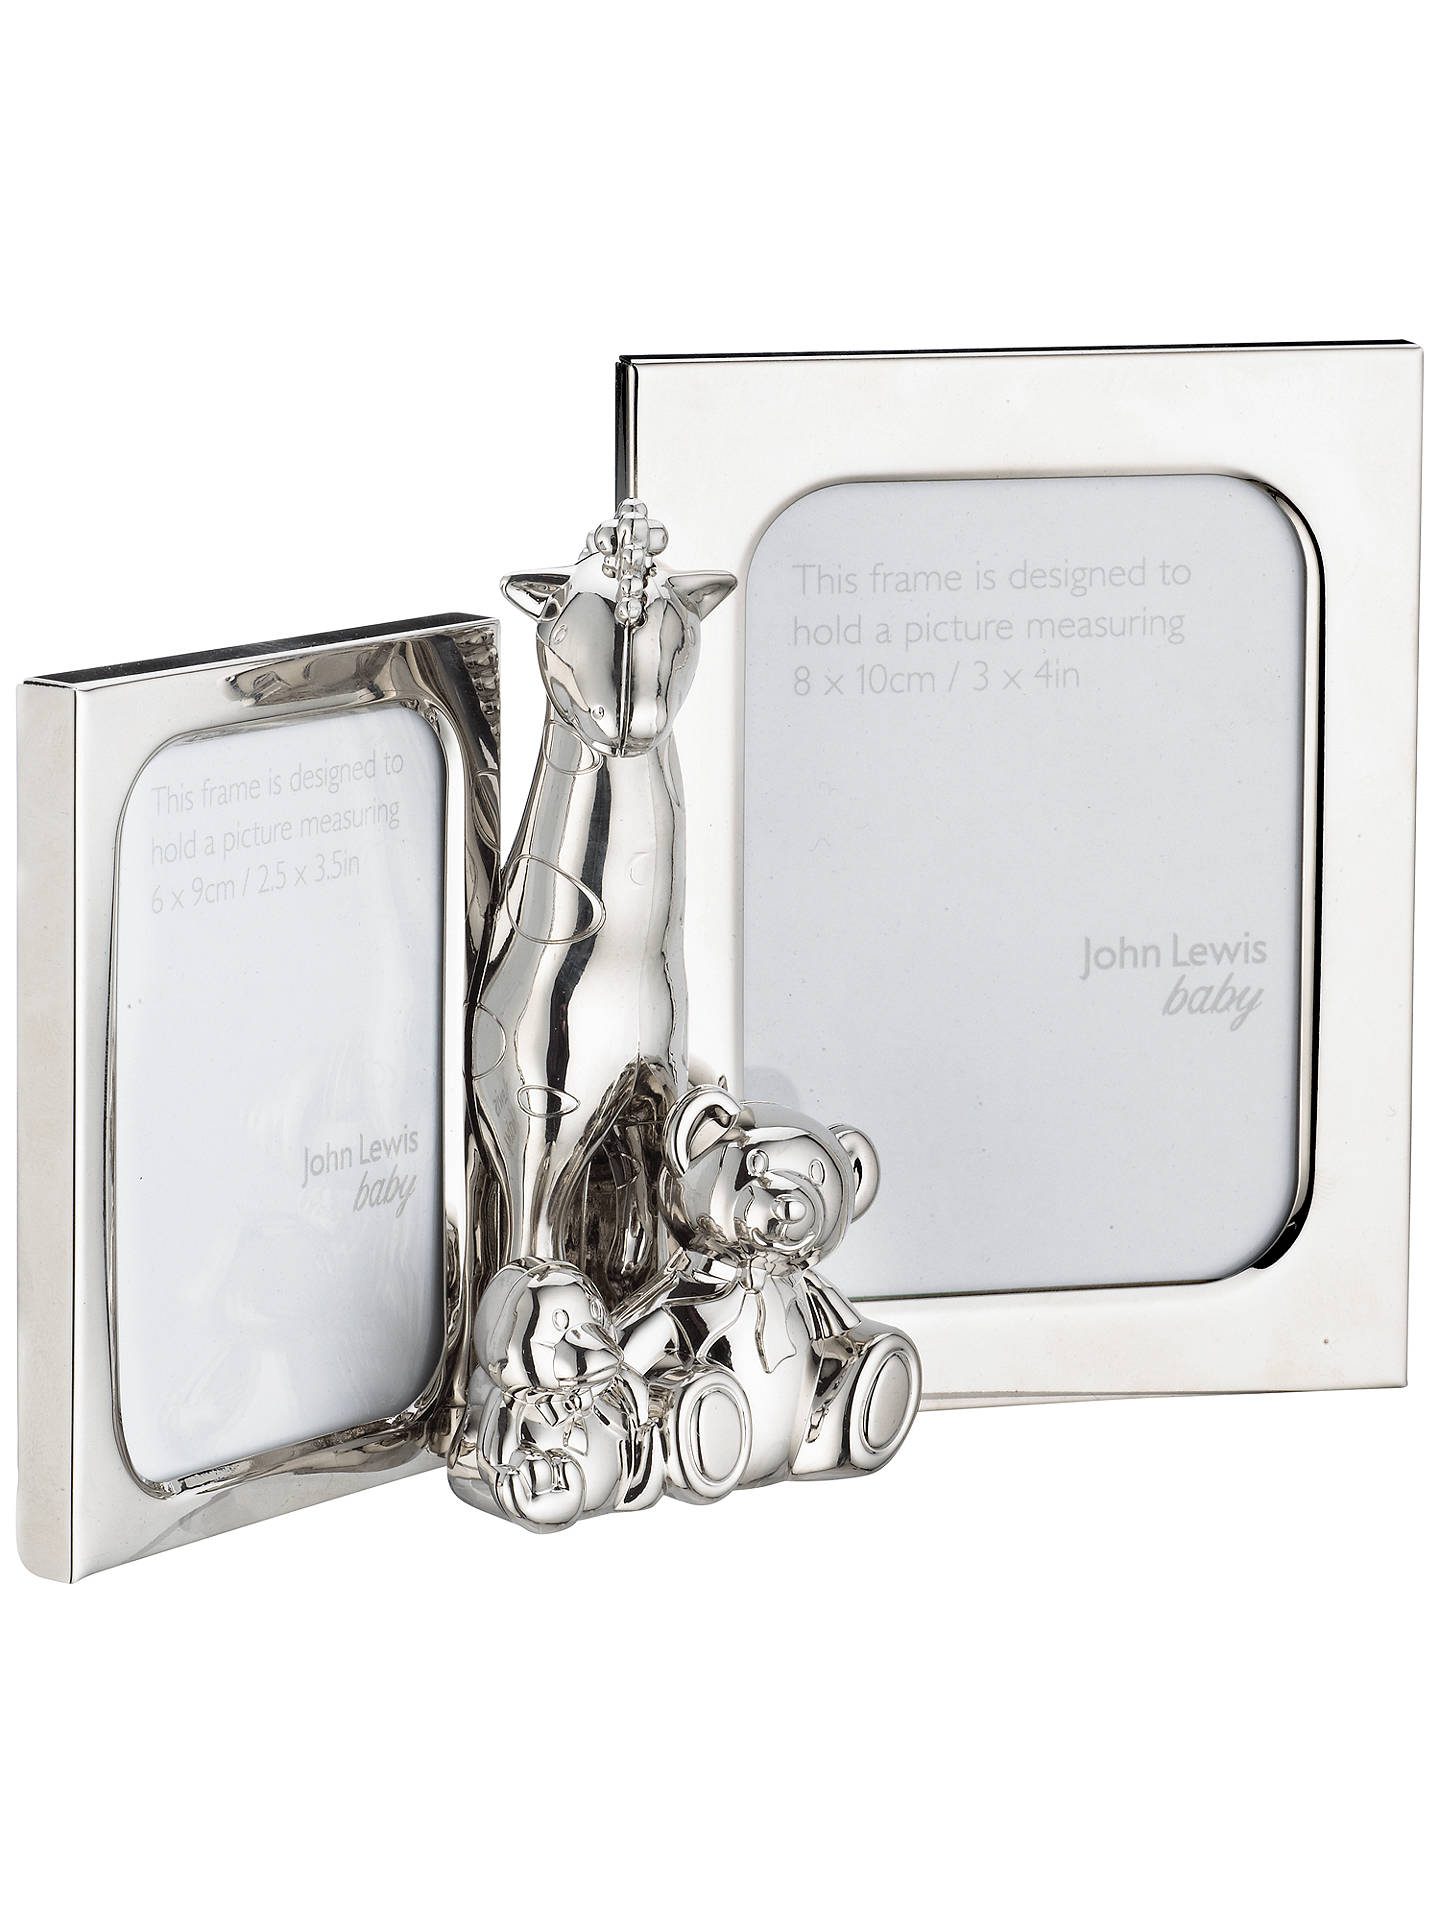 BuyJohn Lewis & Partners Giraffe Photo Frame Online at johnlewis.com